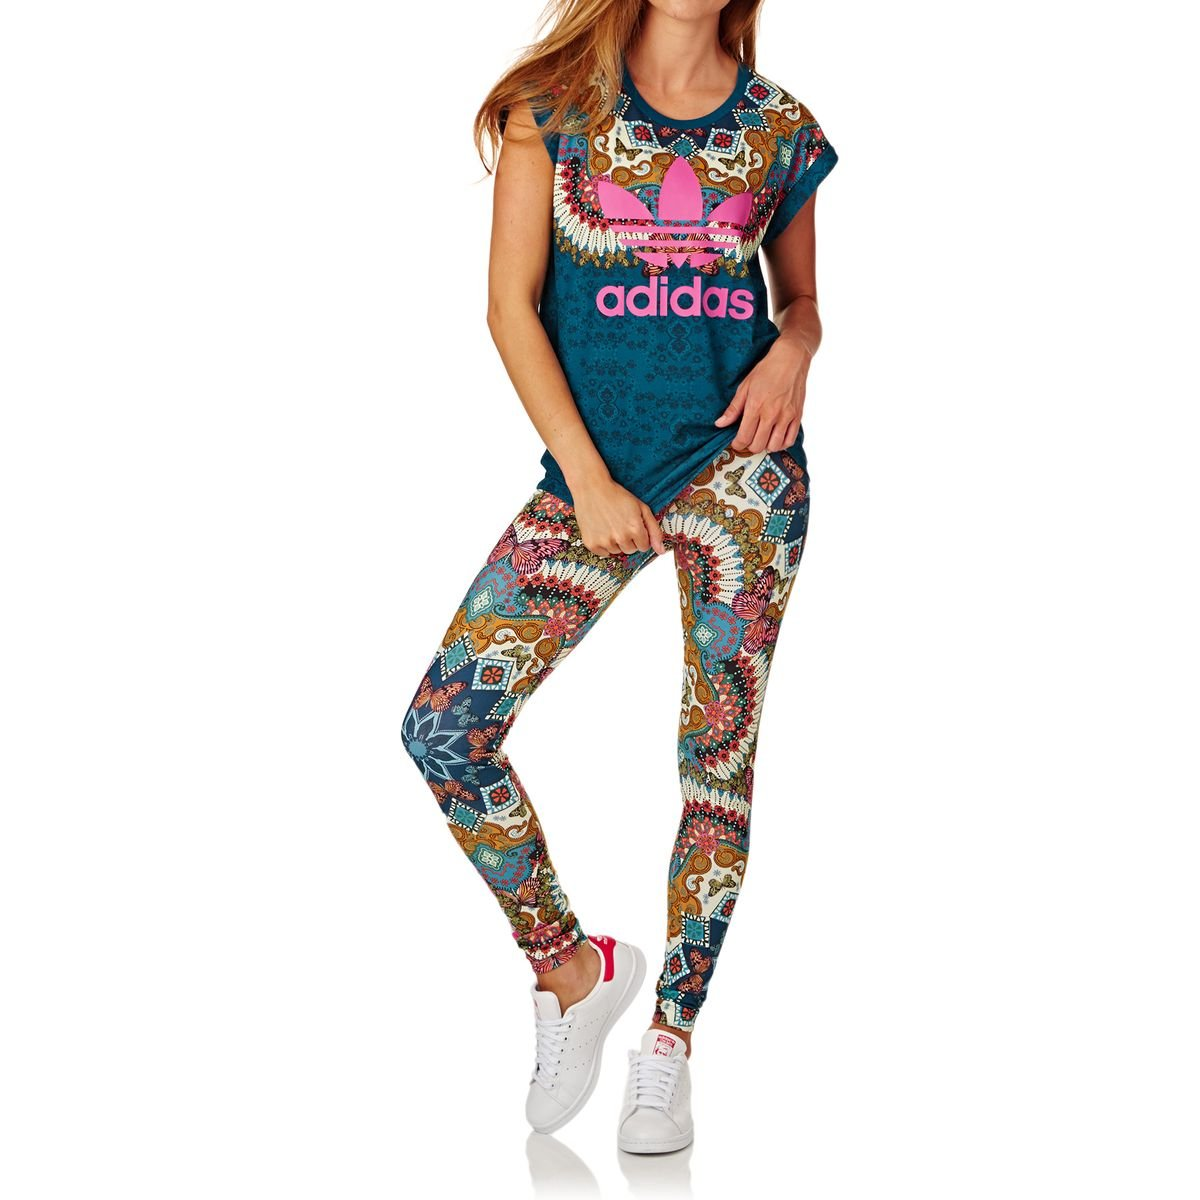 497681ede9c adidas Women's Borbomix Tights, Multicoloured/Multco, Size 28:  Amazon.co.uk: Sports & Outdoors